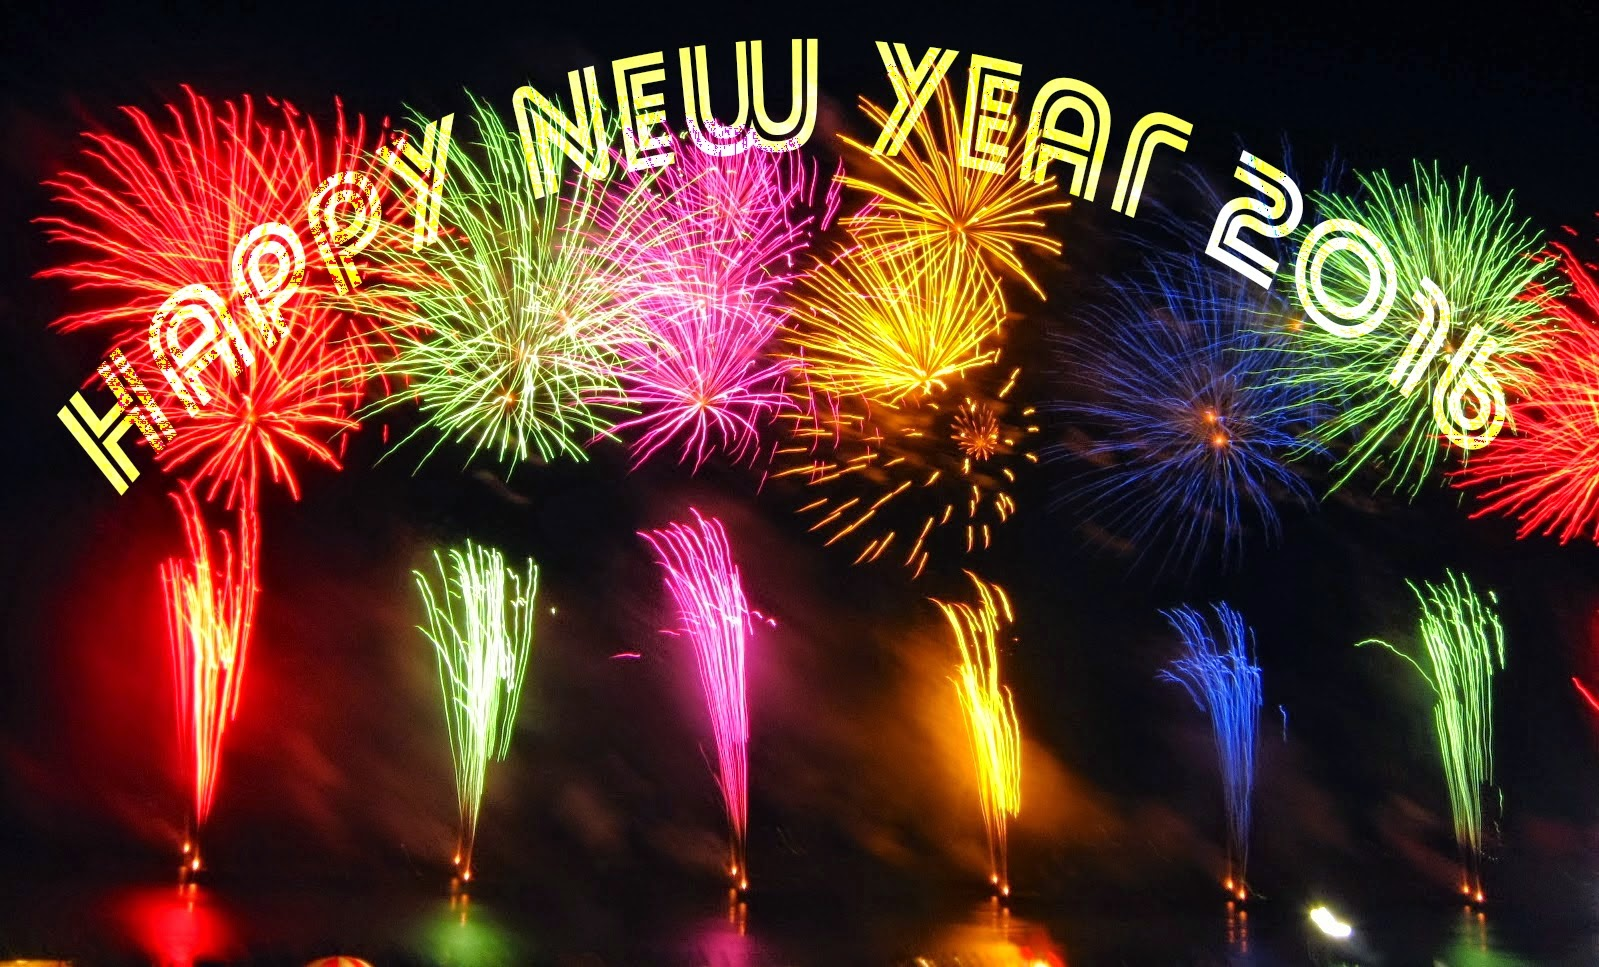 New Year 2016 ImagesNew Year Wishes 2016New Years Eve 2016New Year 1599x967